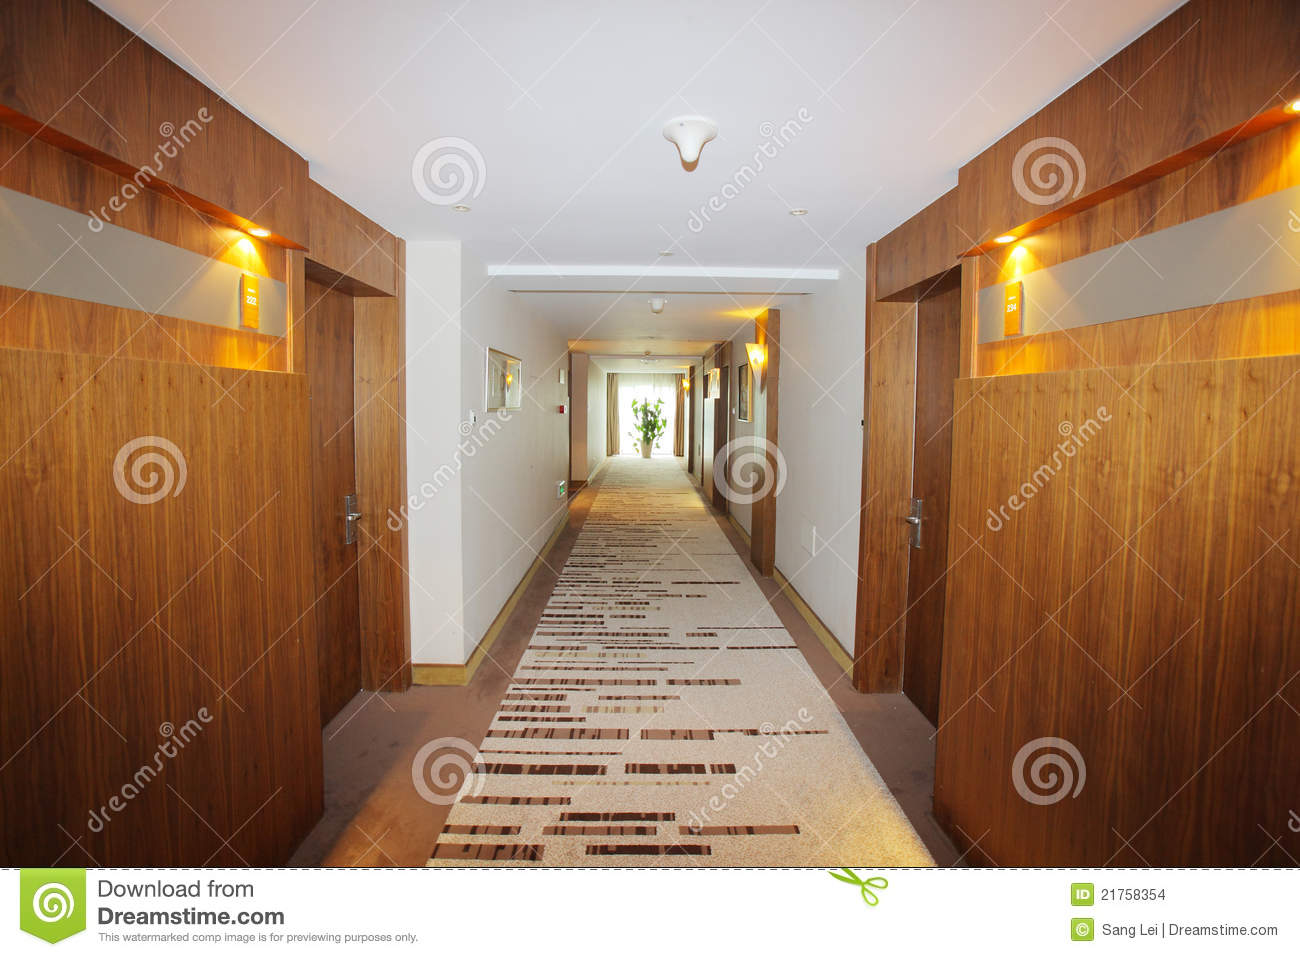 Corridor In Hotel Stock Photo Image Of Inside Interior